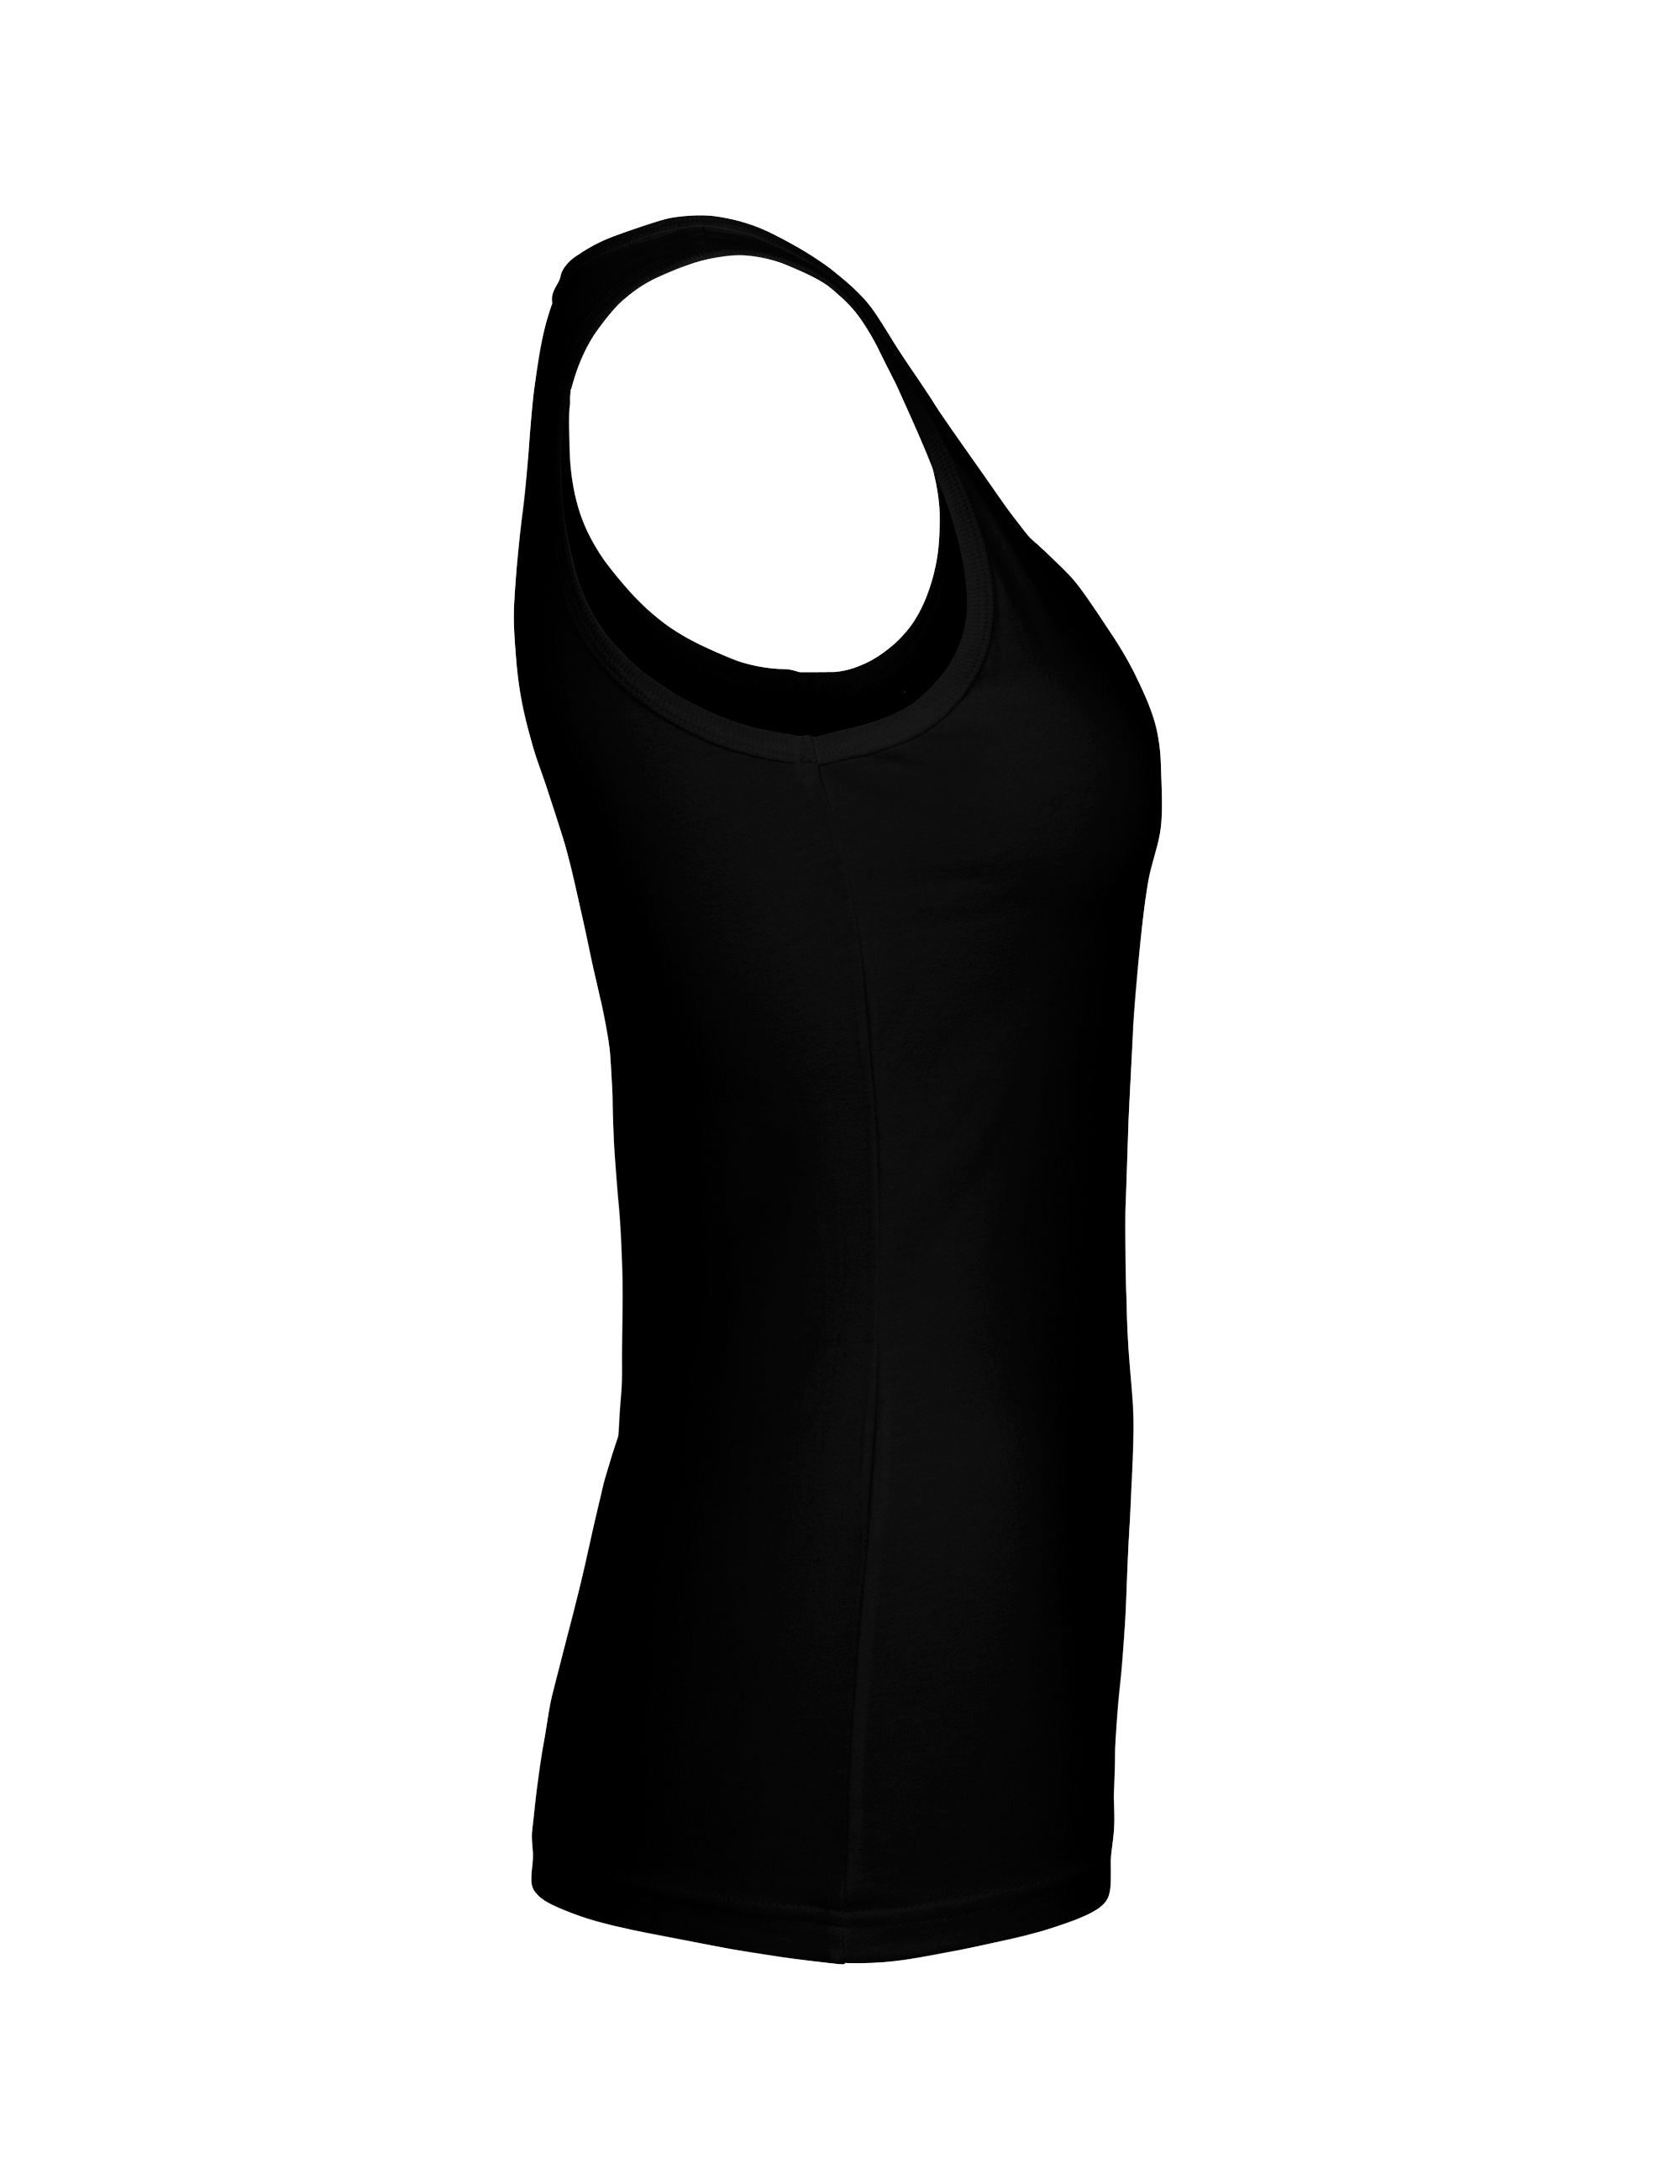 O81300 Ladies Tank Top i Black